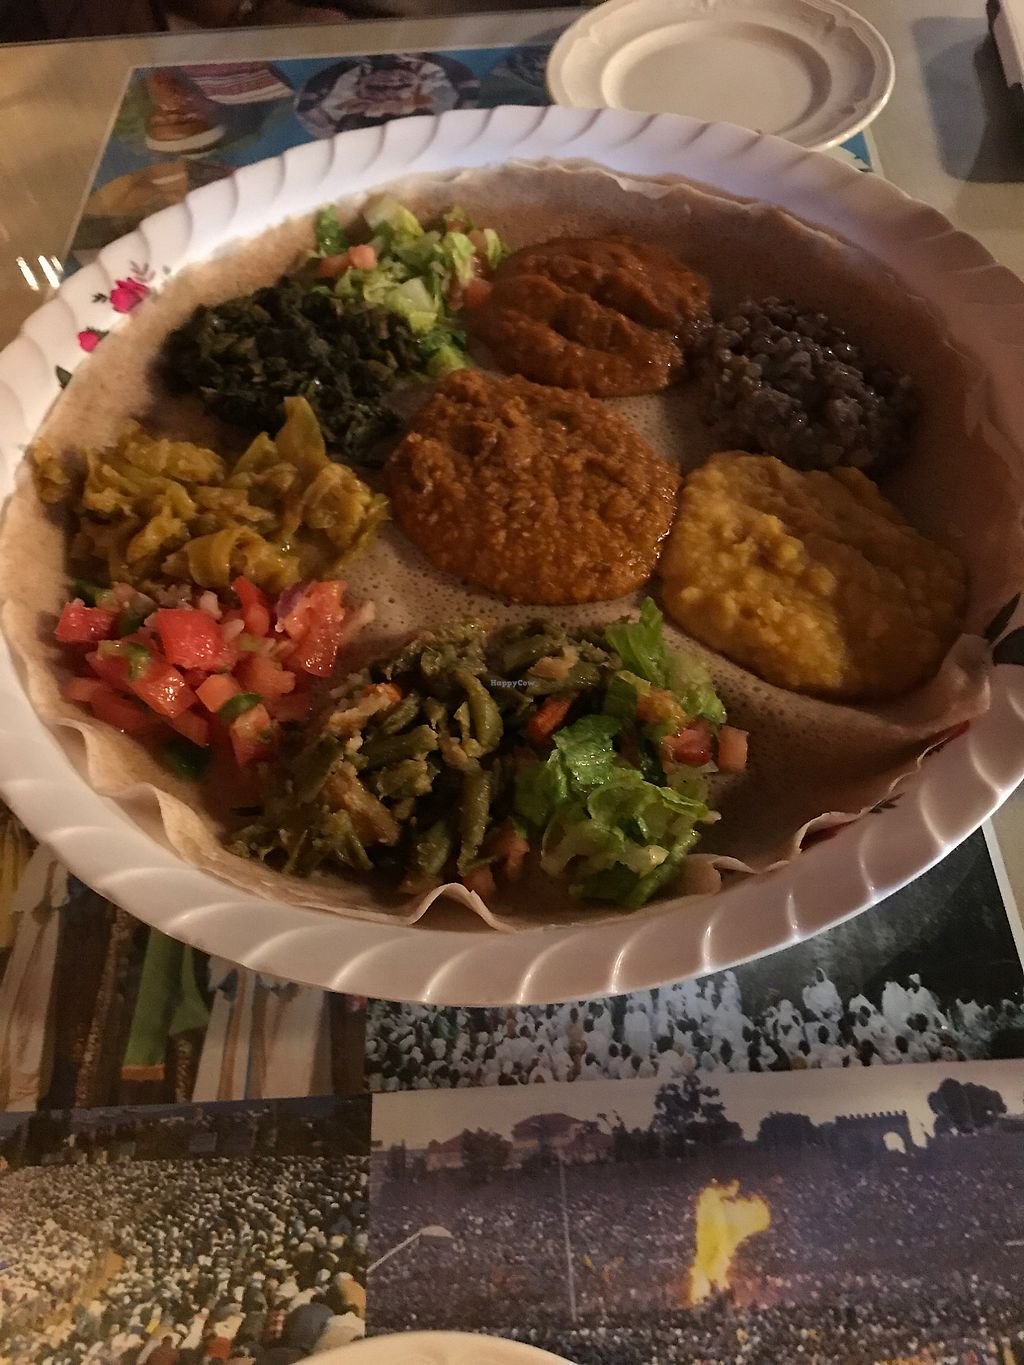 """Photo of Nile Ethiopian Restaurant  by <a href=""""/members/profile/yoga_veg"""">yoga_veg</a> <br/>Vegetarian platter <br/> August 3, 2017  - <a href='/contact/abuse/image/31488/288281'>Report</a>"""